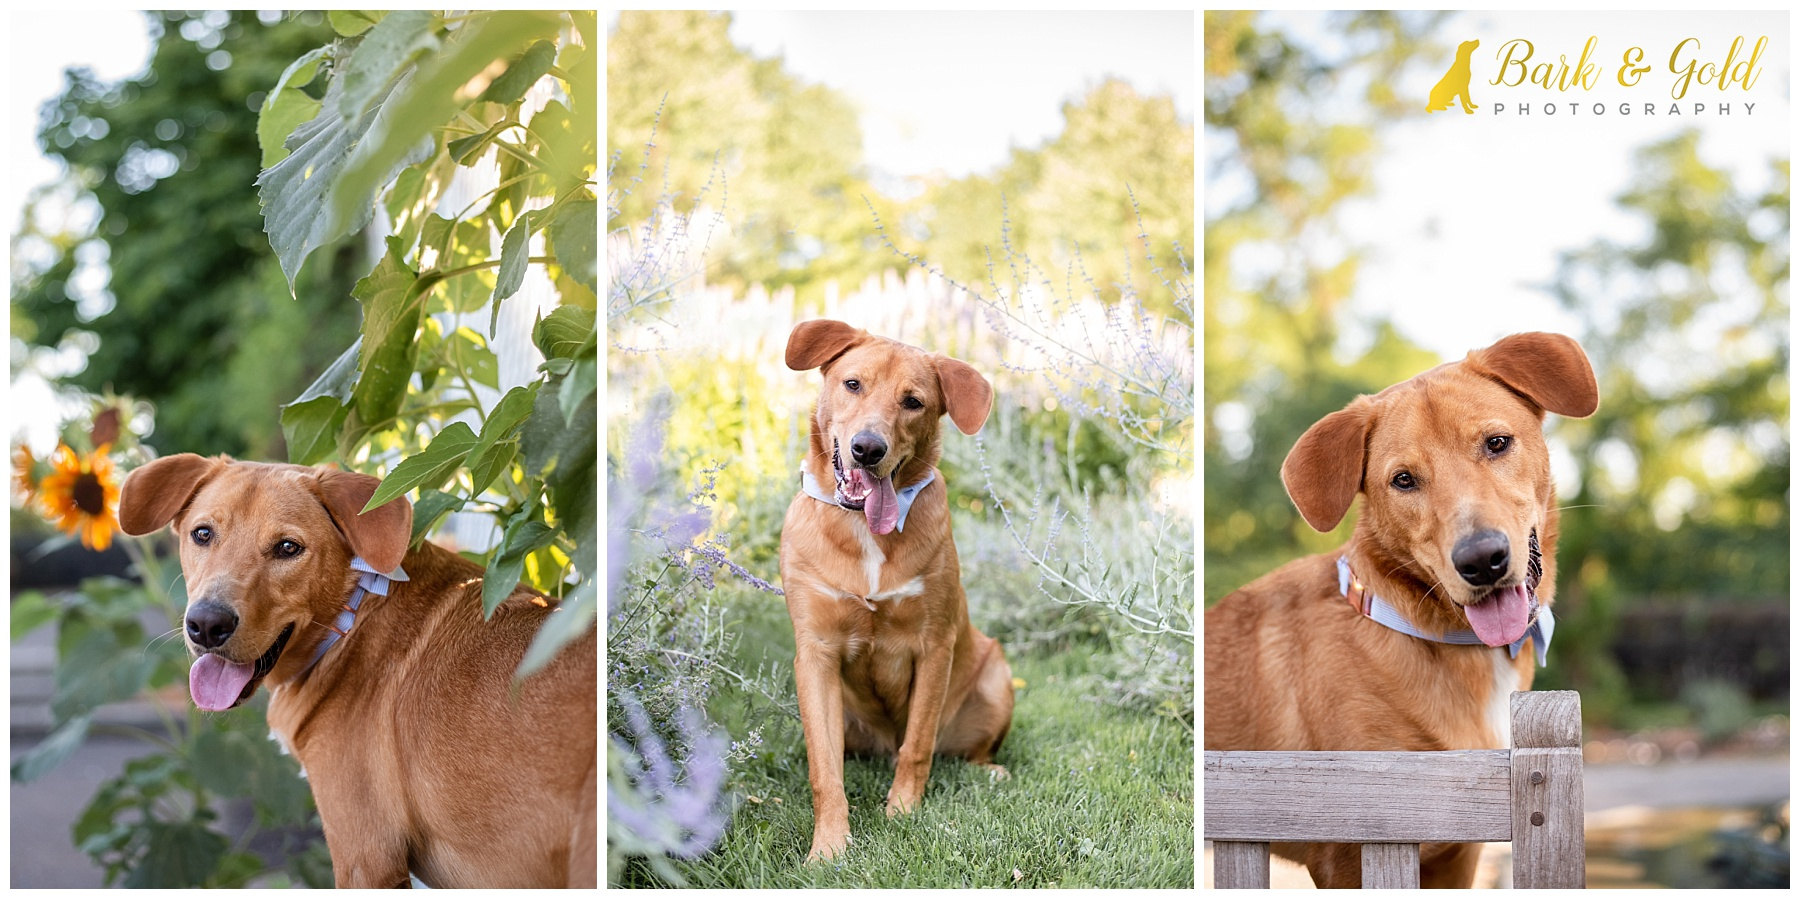 Brown mixed breed dog at playing in flowers at Phipps Conservatory gardens